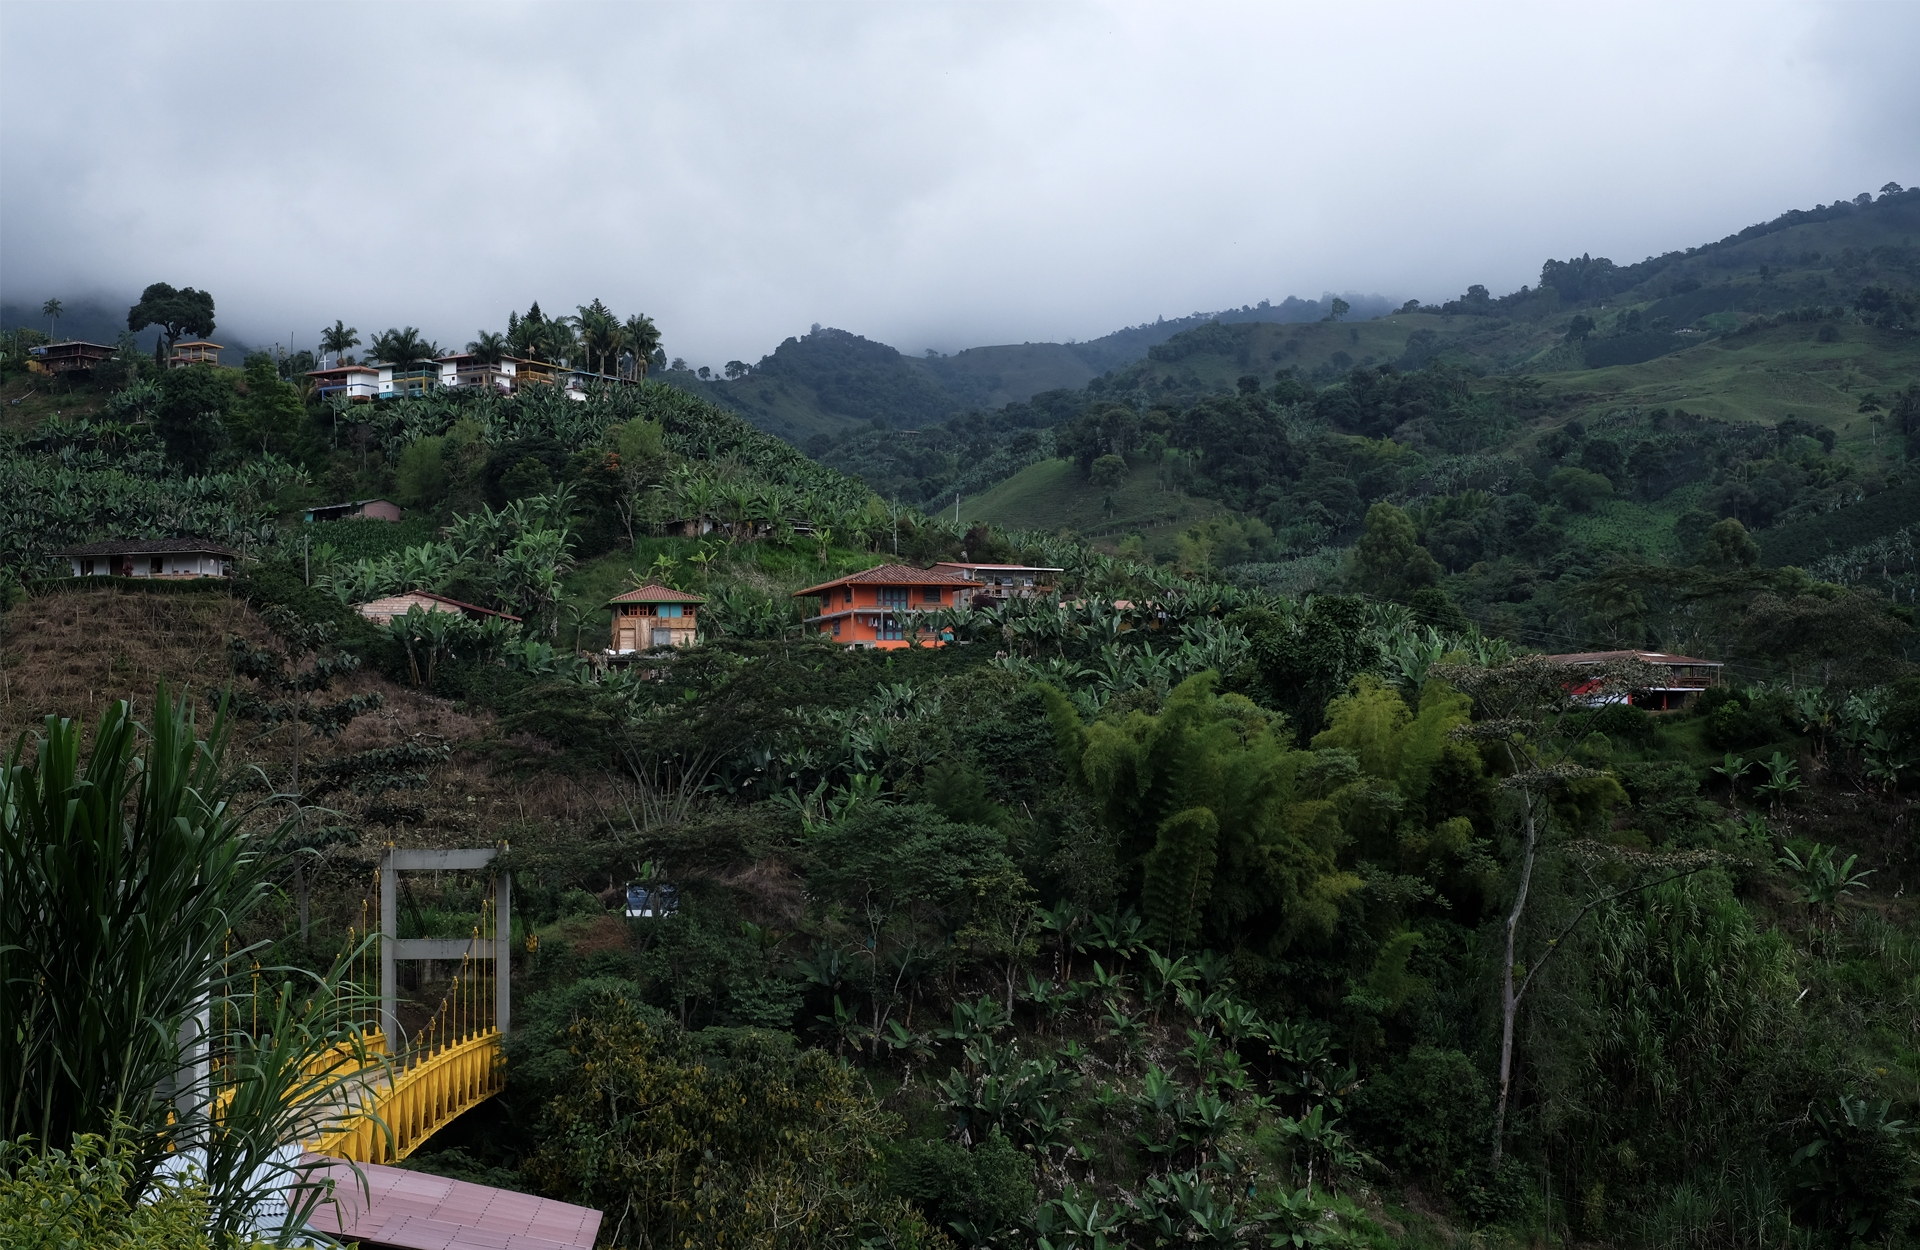 Authentic Colombia view of the bridge yellow banana trees injungle cloudy